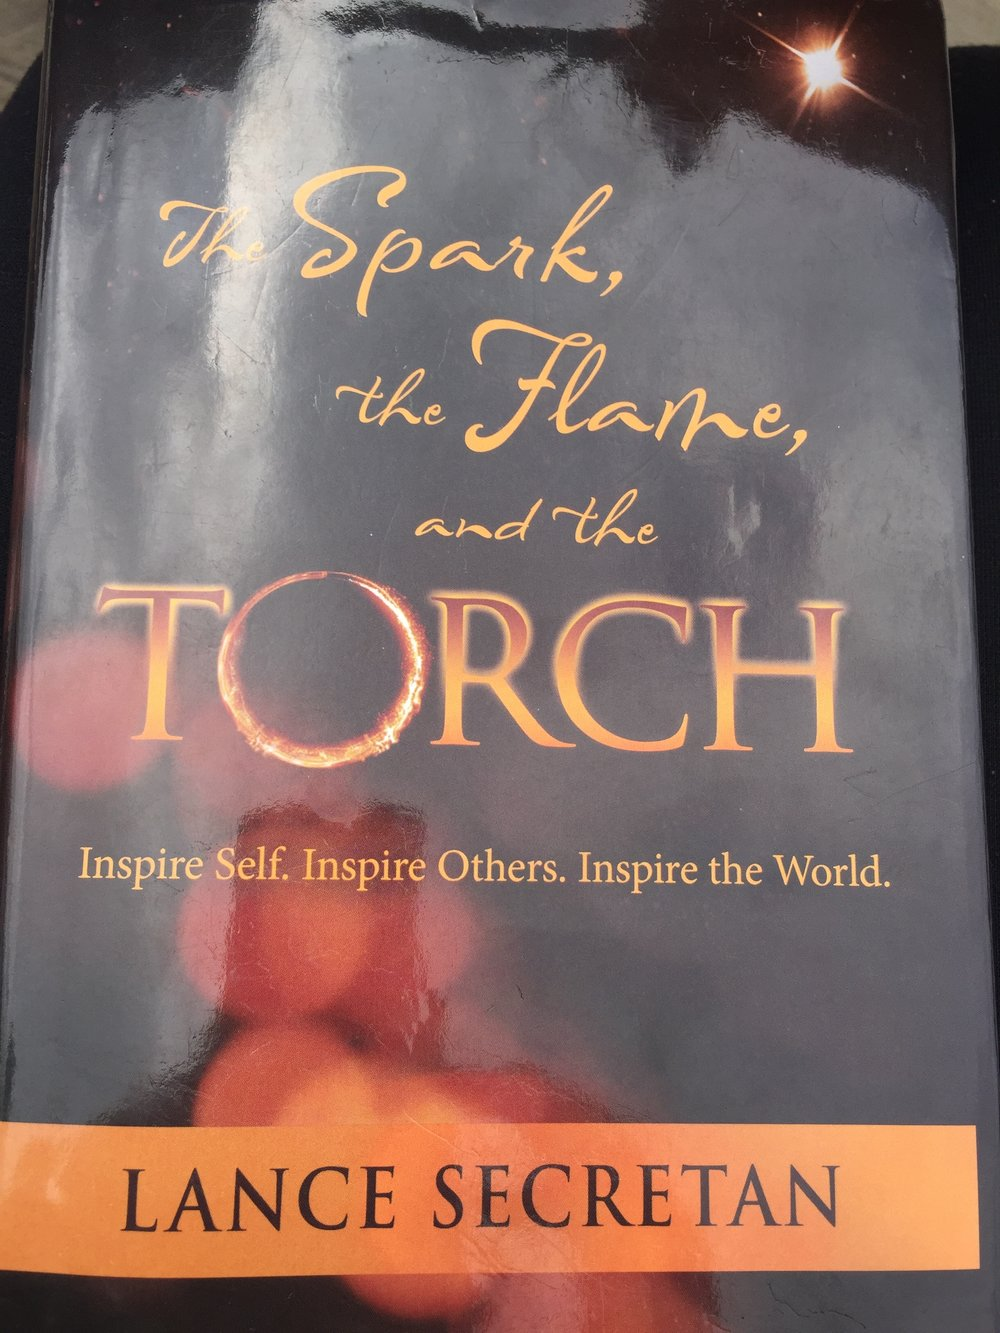 During a Barret conference in Canada I met this very inspiring man, Lance Secretan, who is also a great poet by the way. He sure walks his talk. In this book he elaborates on the importance of developing Self as the only way to (effortlessly) then be able to inspire others and automatically inspire the world. Very inspiring!